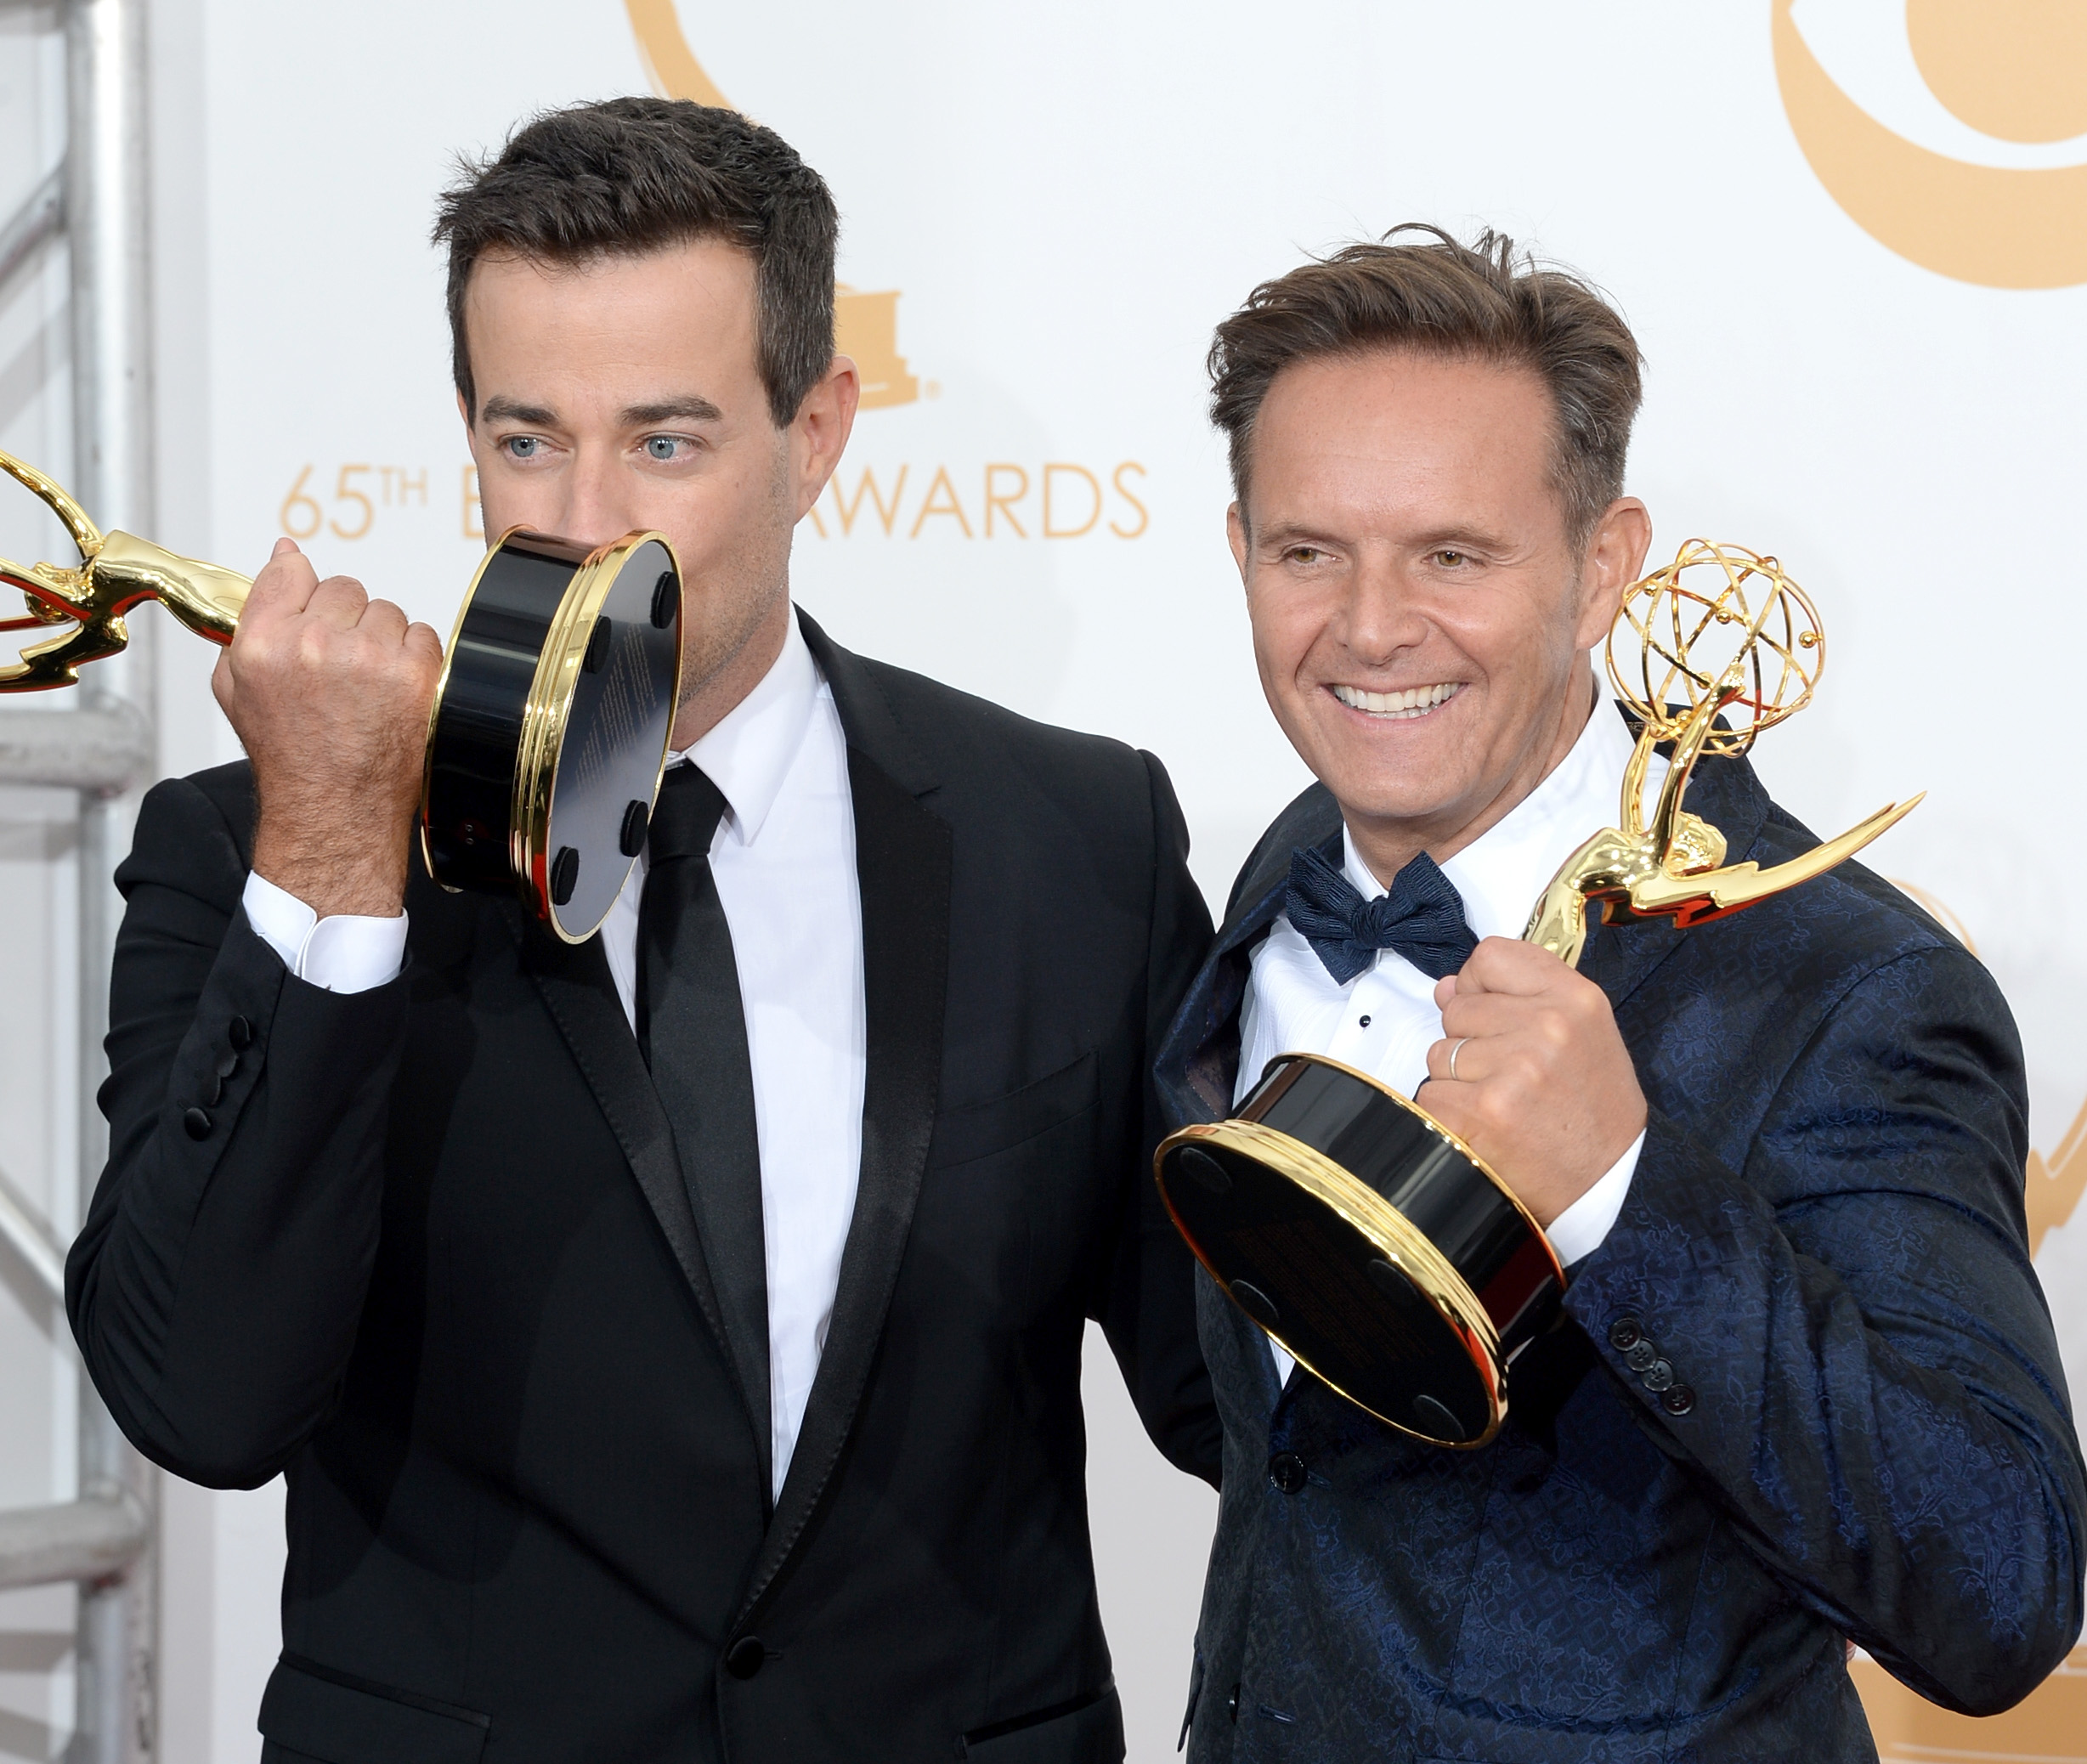 """The Voice"" host Carson Daly and producer Mark Burnett [photo: Jason Merritt/Getty Images]"